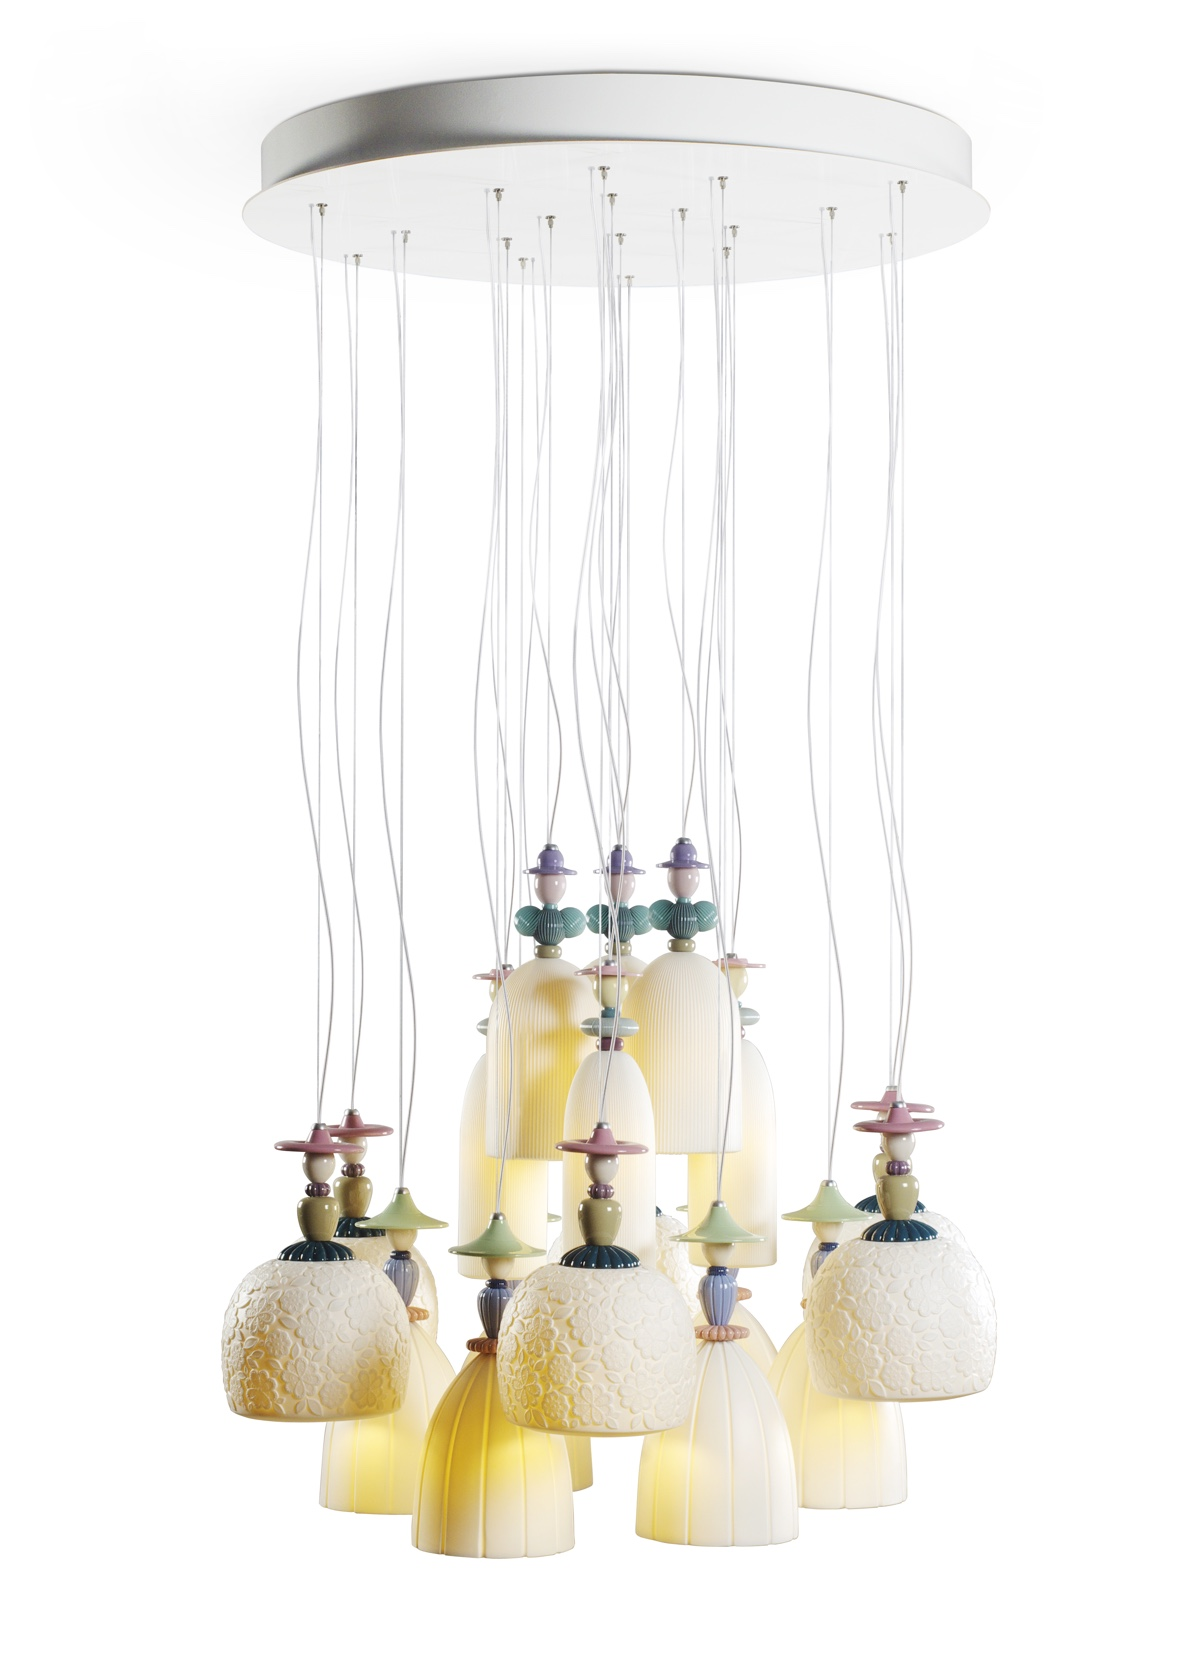 Mademoiselle chandelier from Lladró. Sculptor: Dept. Diseño y Decoración.